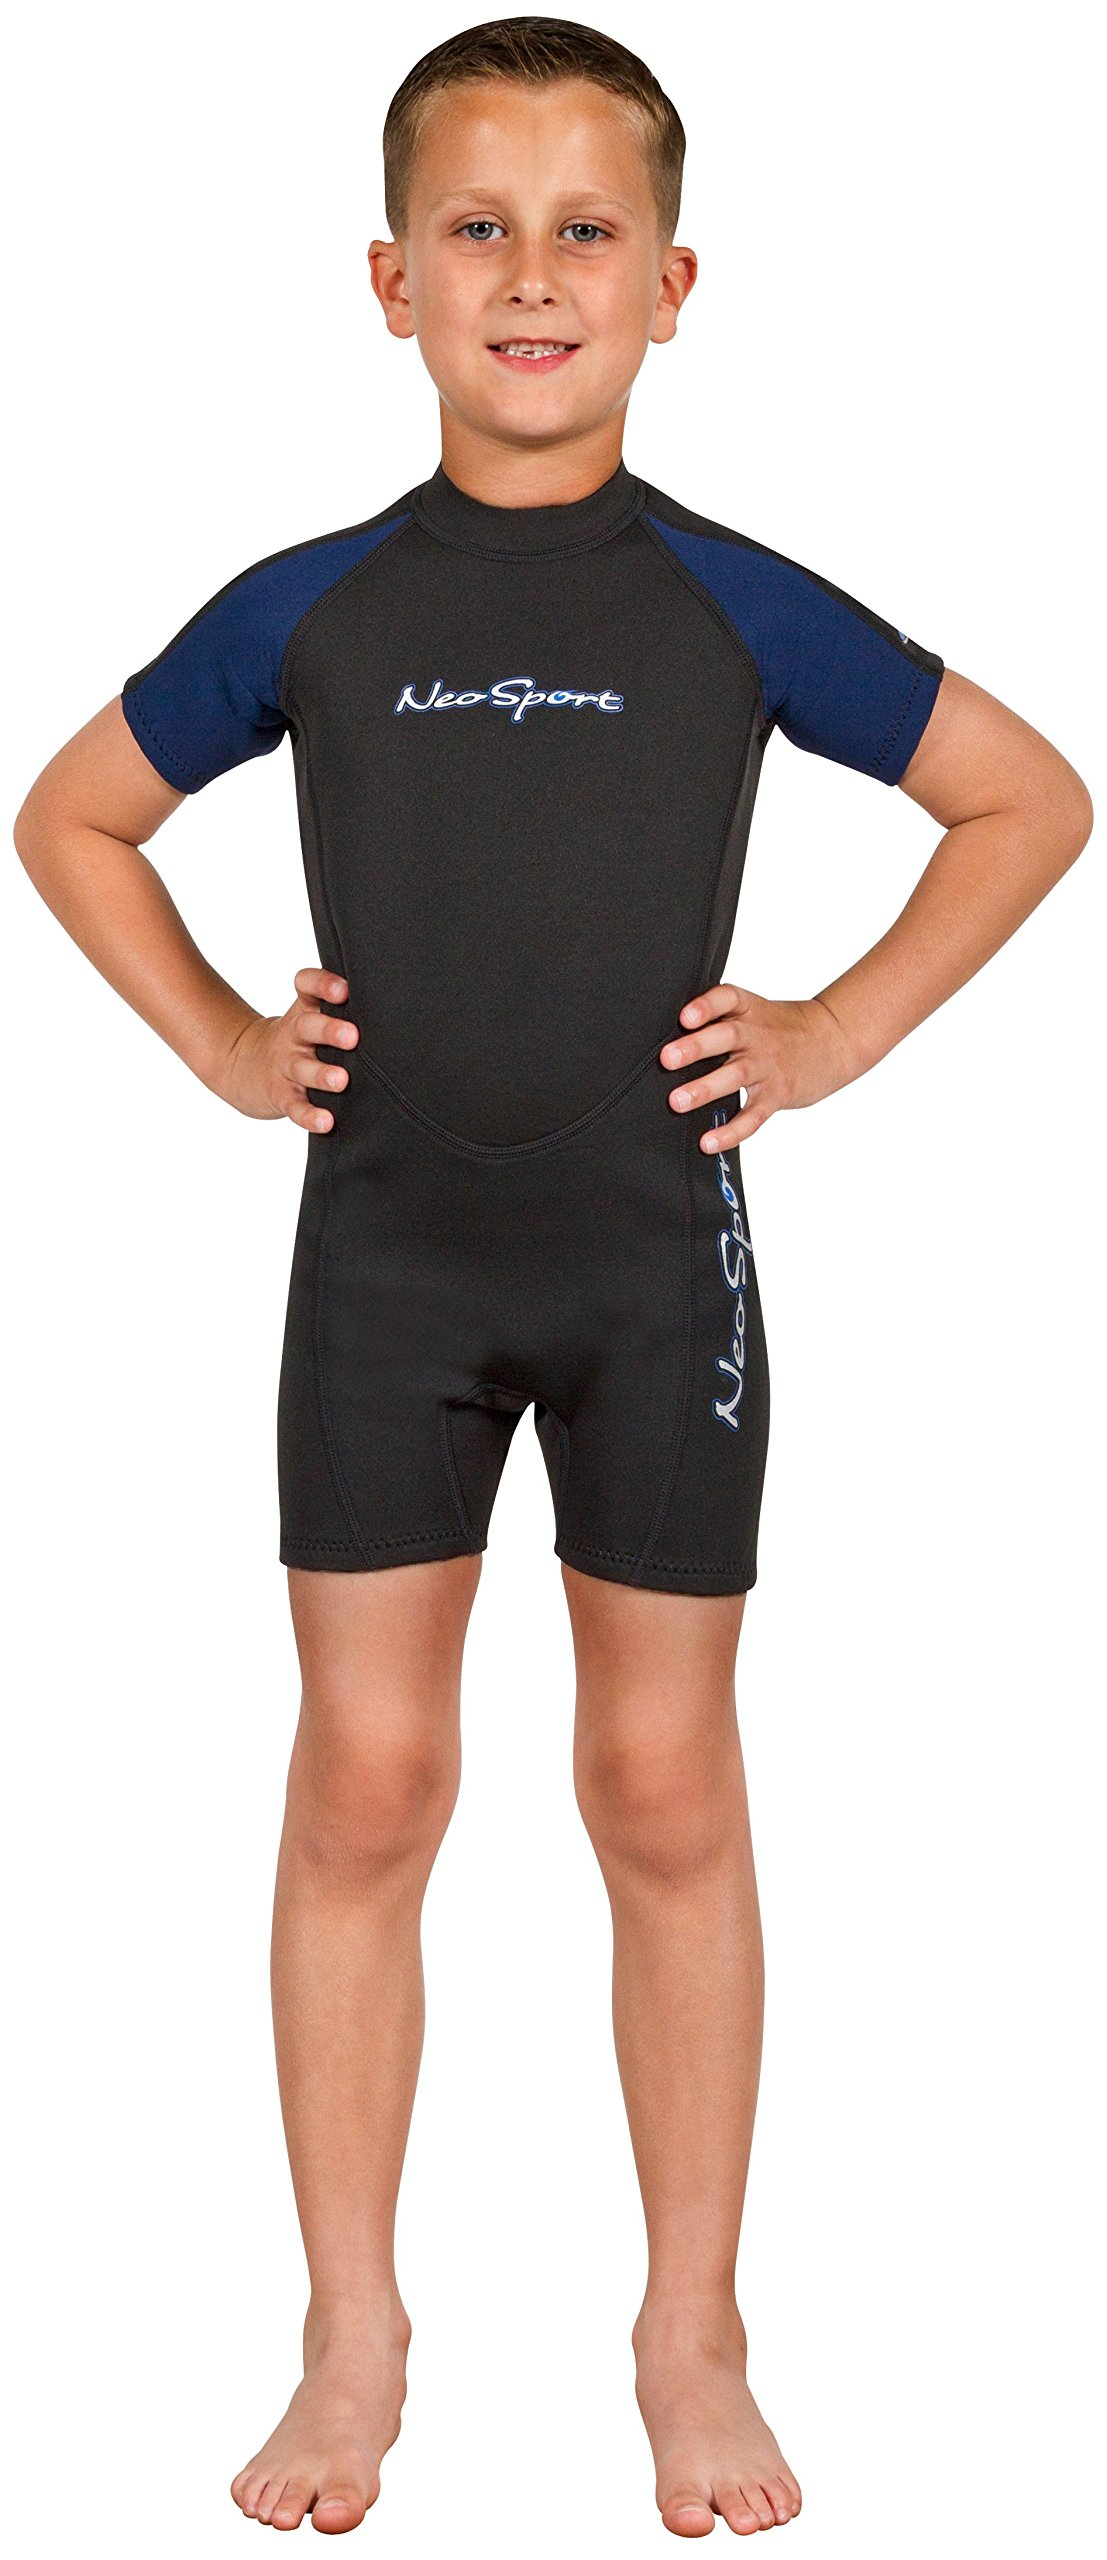 NeoSport Wetsuits Youth Premium Neoprene 2mm Youth's Shorty, Blue Trim, 8 - Diving, Snorkeling & Wakeboarding by Neo-Sport